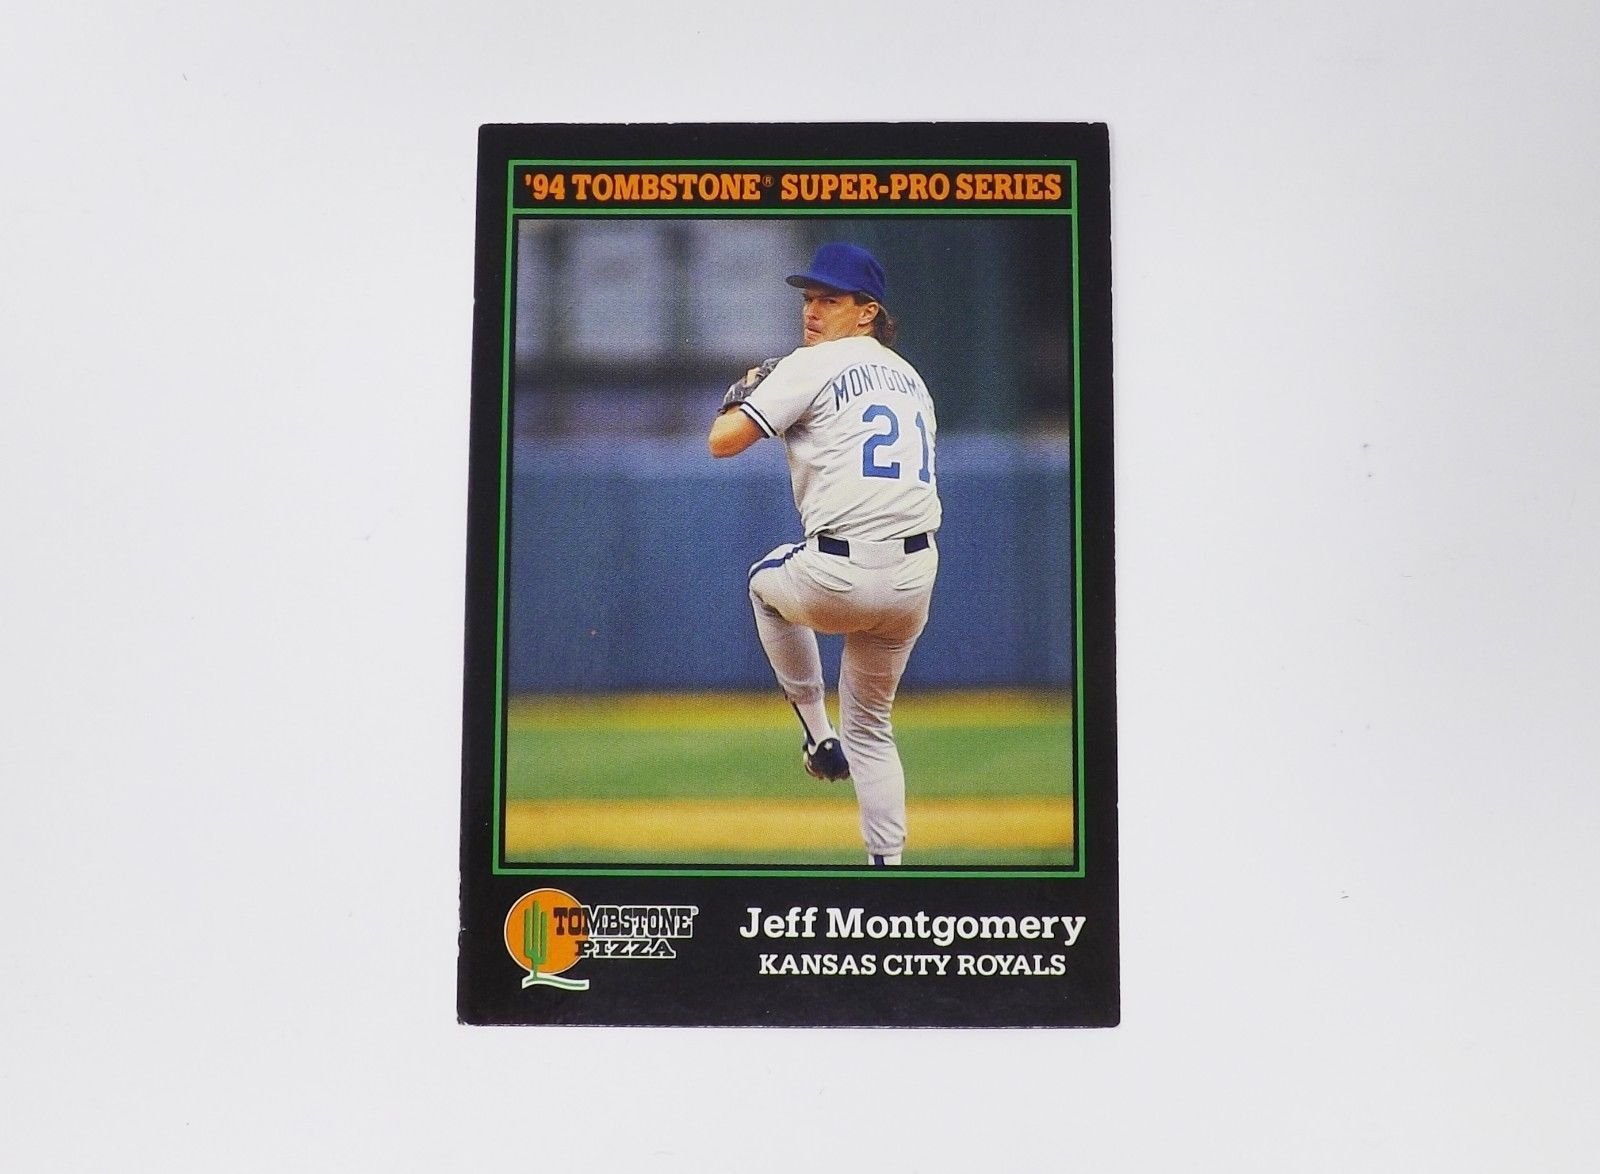 Primary image for 1994 Score Tomstone Super-Pro Series Jeff Montgomery Kansas City Trading Card